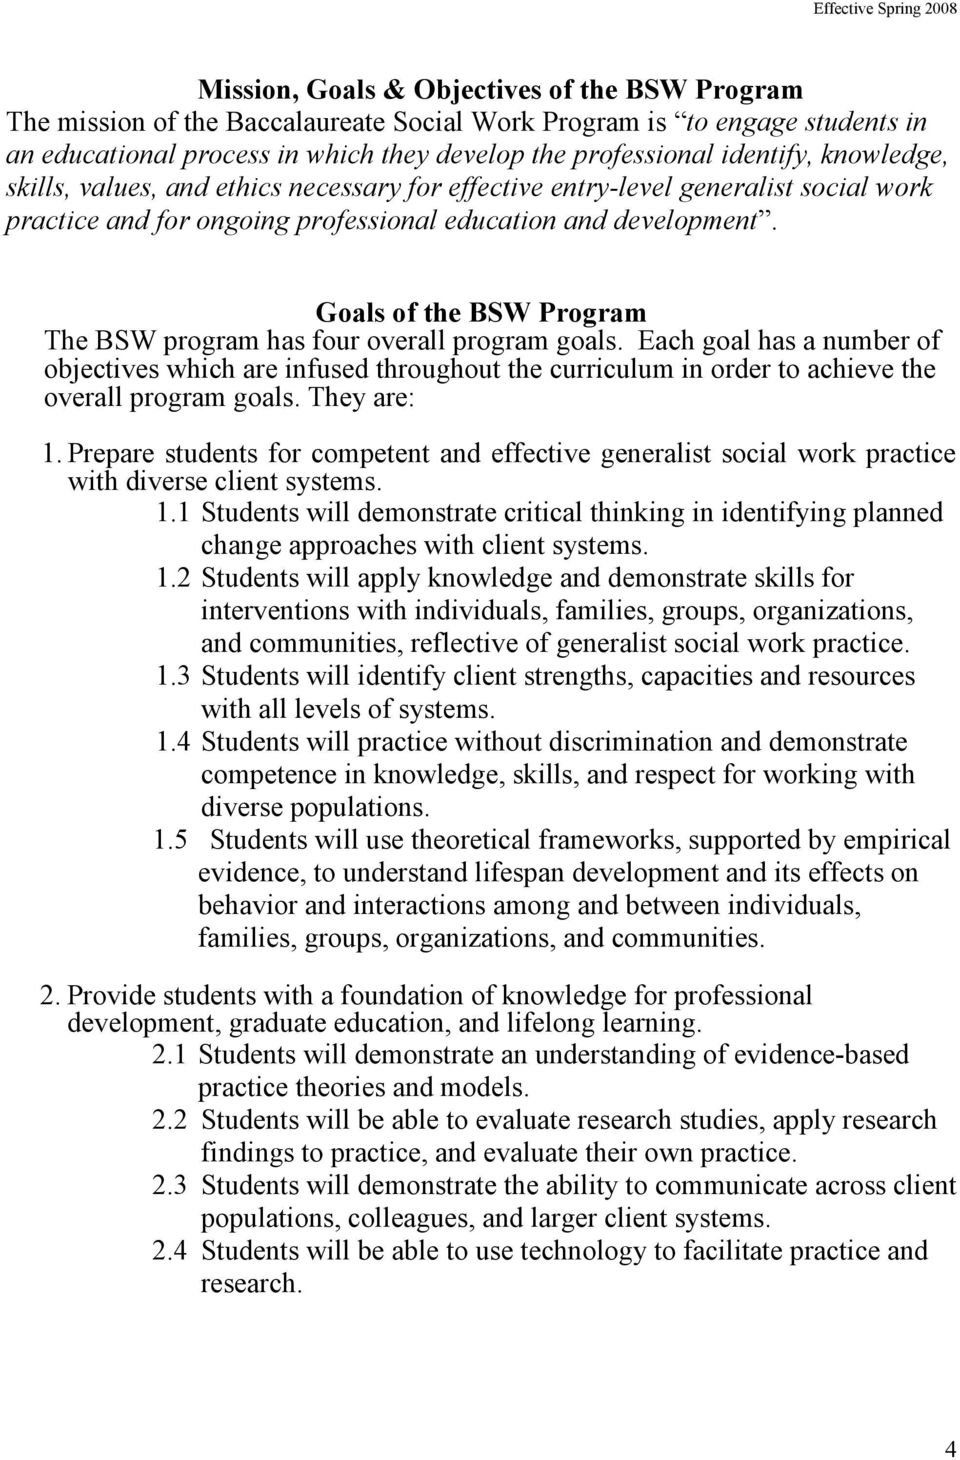 Goals of the BSW Program The BSW program has four overall program goals. Each goal has a number of objectives which are infused throughout the curriculum in order to achieve the overall program goals.